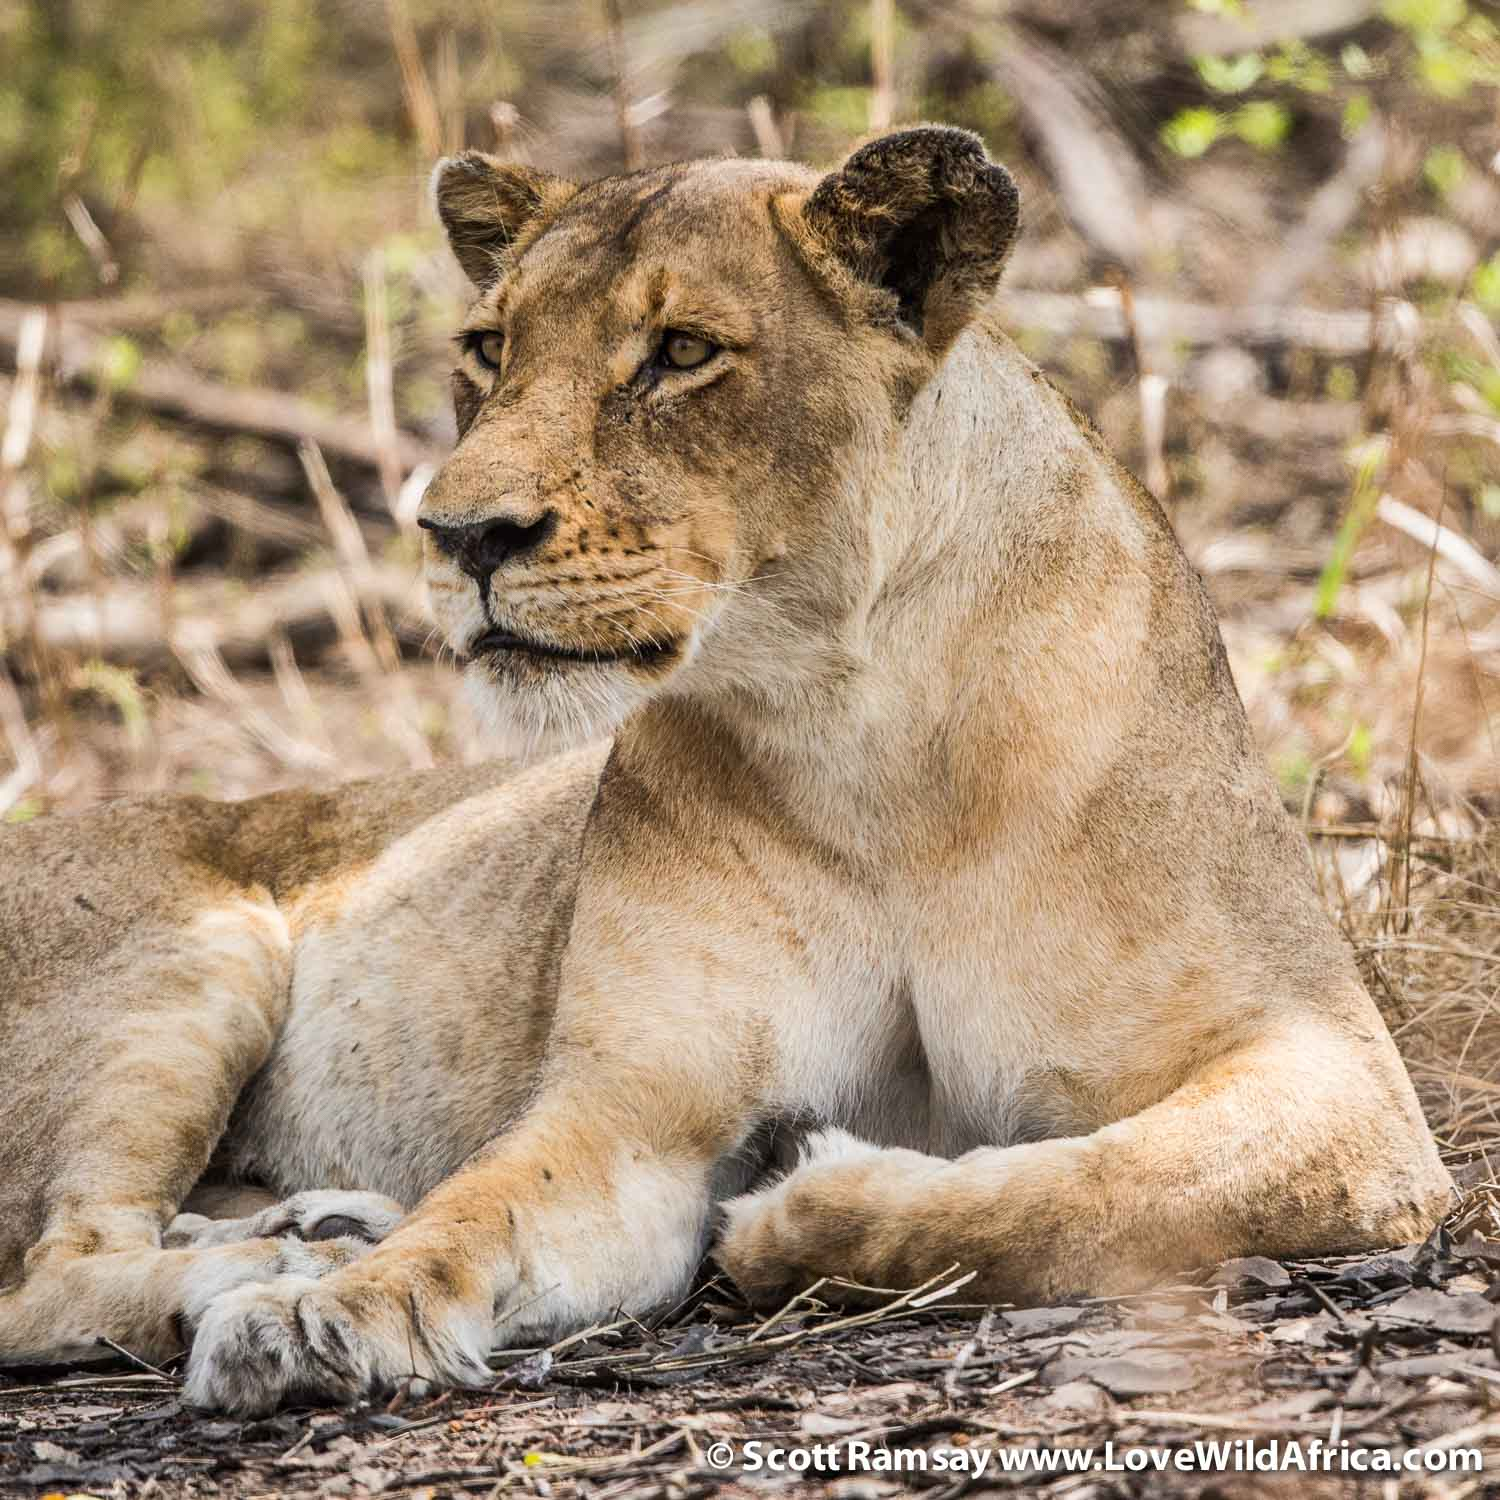 The lions of Gorongosa have always been here. Unlike spotted hyaenas and wild dogs, they weren't wiped out by the civil war. Today there are about 70 lions that researchers have documented, and there have been no introductions of lions from other parks. Yet, interestingly, despite no competition from other large predators like hyaenas, the lion population doesn't seem to be growing. Researcher Paula Bouley is at the forefront of the effort to understand the behaviour and biology of the lions of Gorongosa.